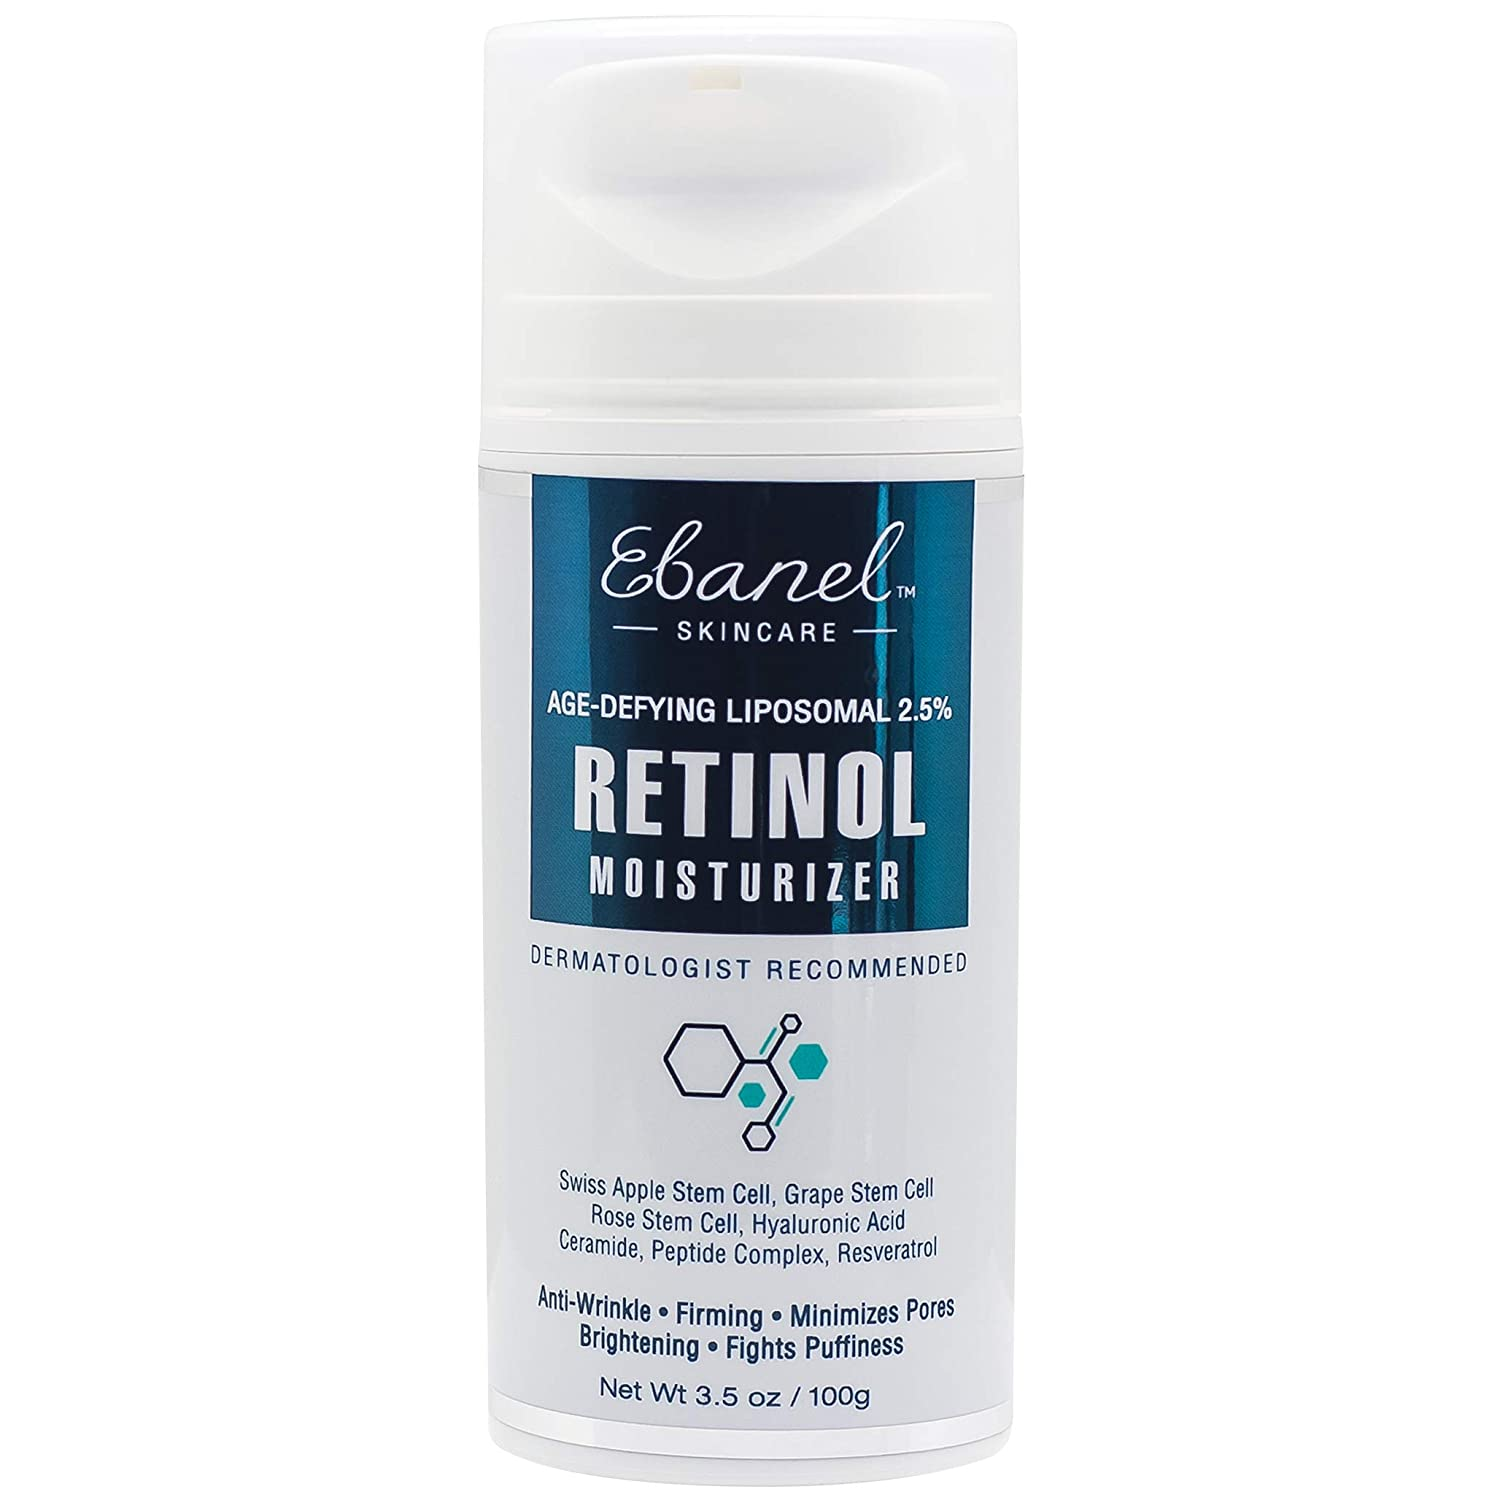 (3.5 Oz) Ebanel Advanced 2.5% Retinol Stem Cell Moisturizer with Age Defying Liposomal Technology - Hyaluronic Acid, Resveratrol, Peptide Complex Ebanel Laboratories Inc.